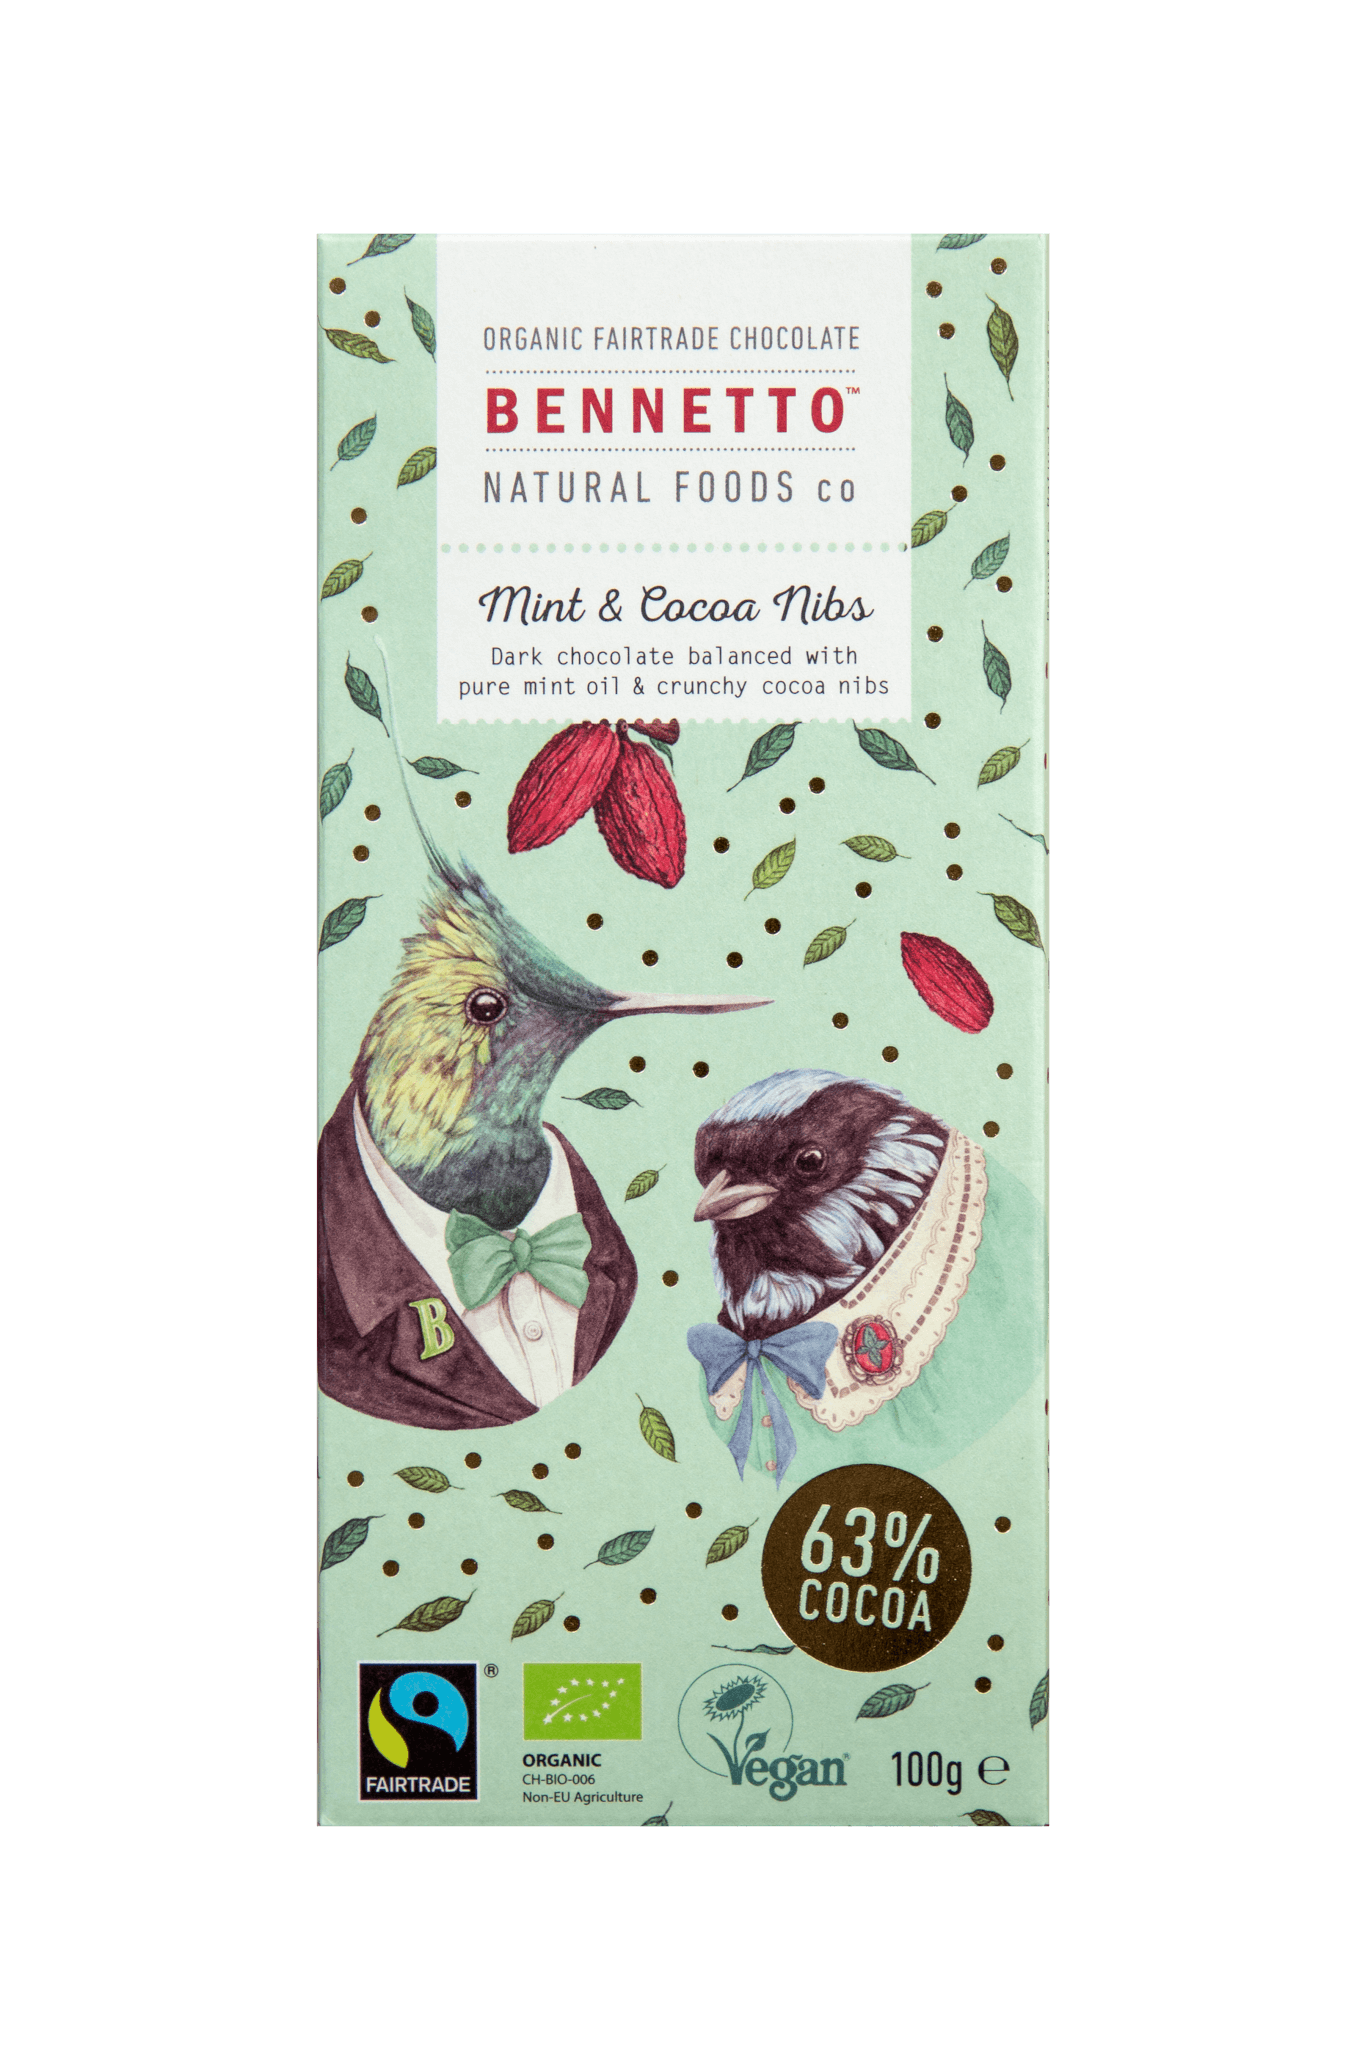 Bennettos Organic Dark Chocolate Mint and Cocoa Nibs 100g -Chocolate